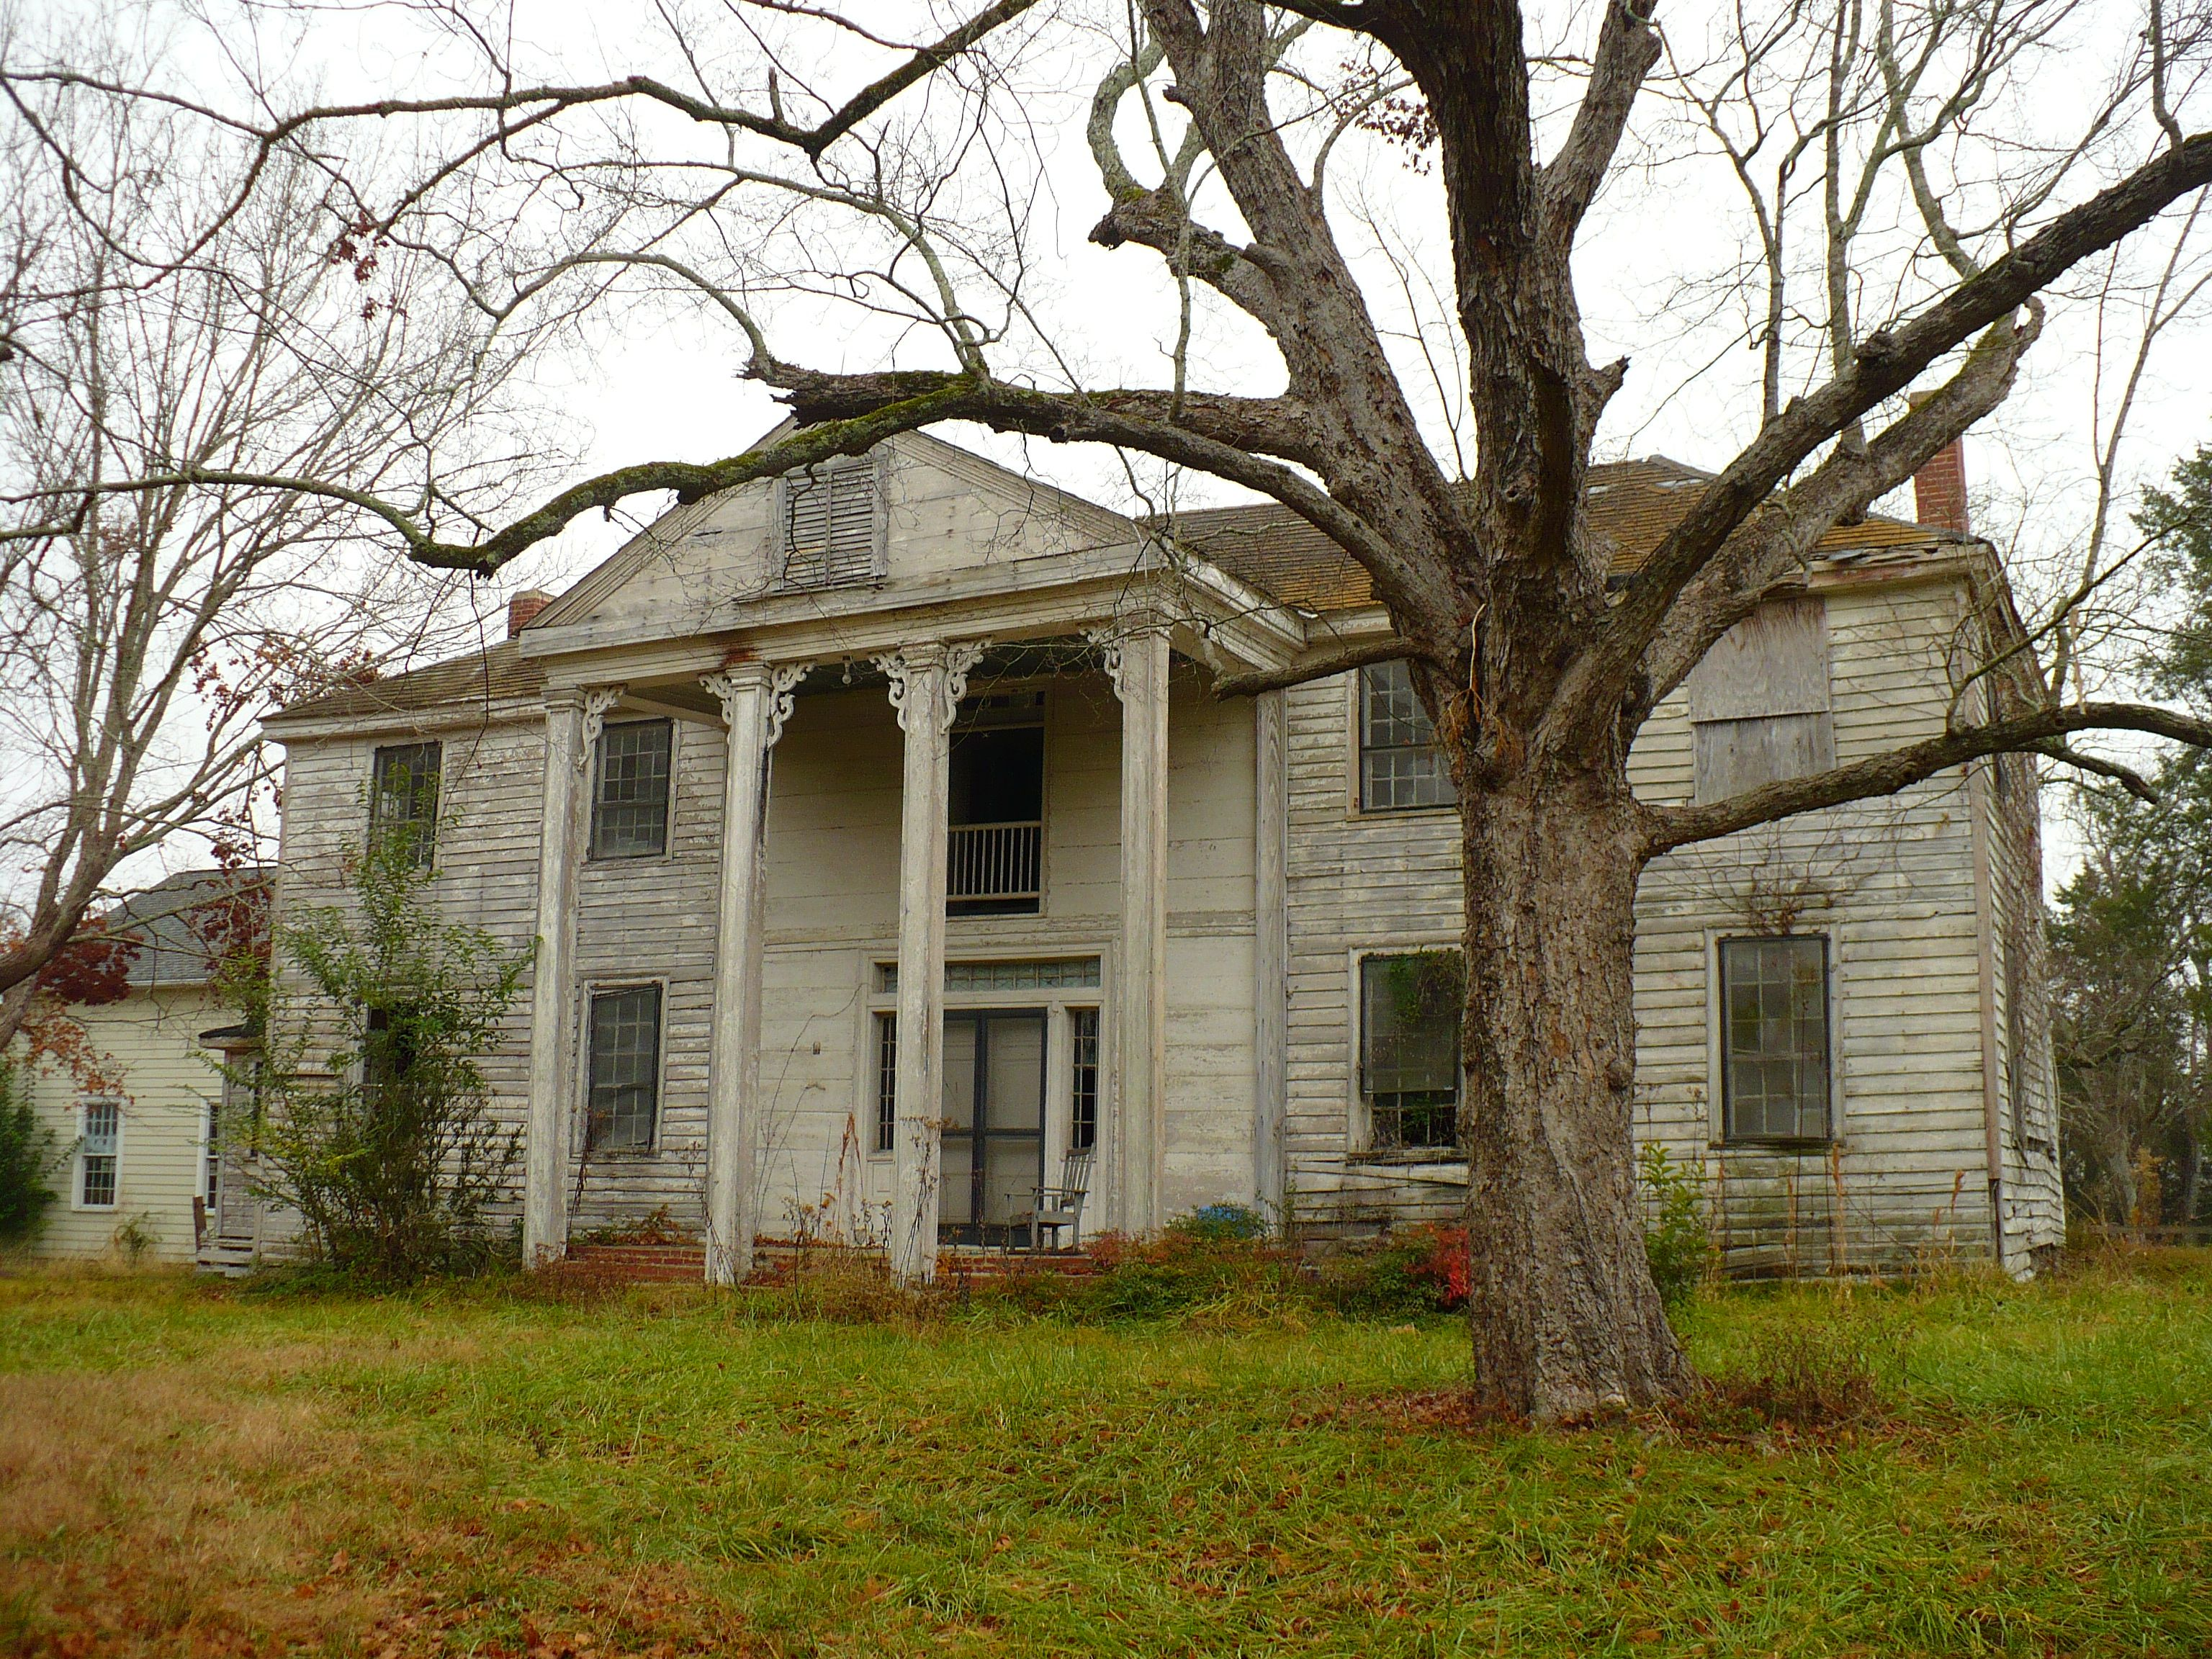 Bermuda hill plantation near prairieville al also for Antebellum homes